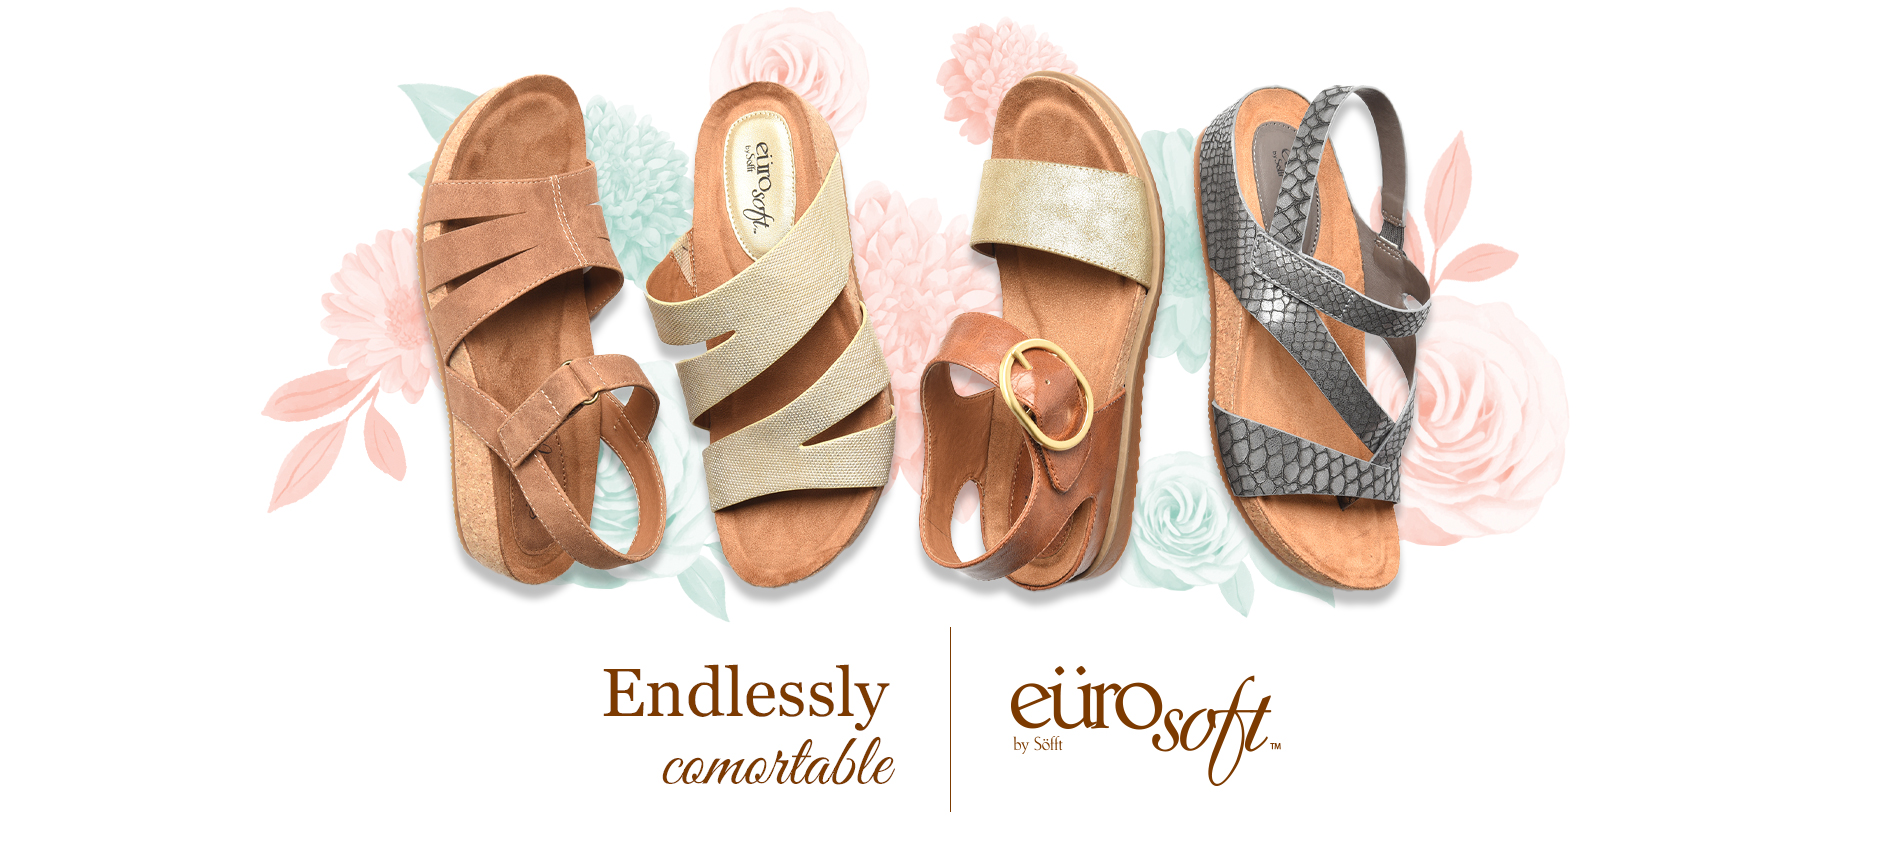 Endlessly comfortable. Eurosoft by Sofft. Shop All Styles